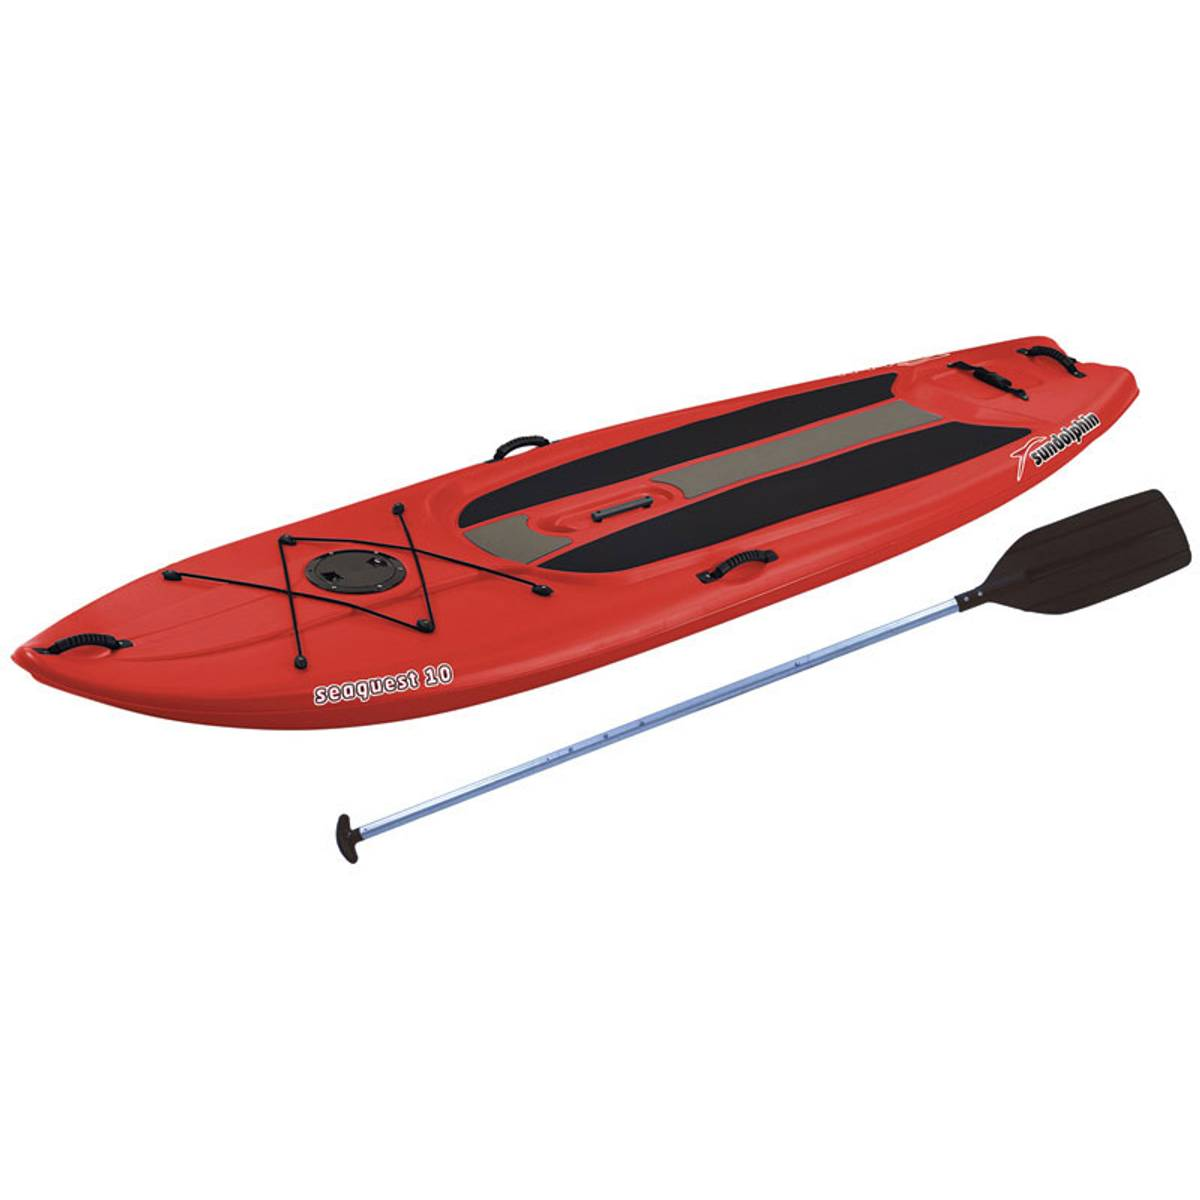 Sun Dolphin 52110 Seaquest 10 Stand Up Paddleboard from Blain's Farm and  Fleet